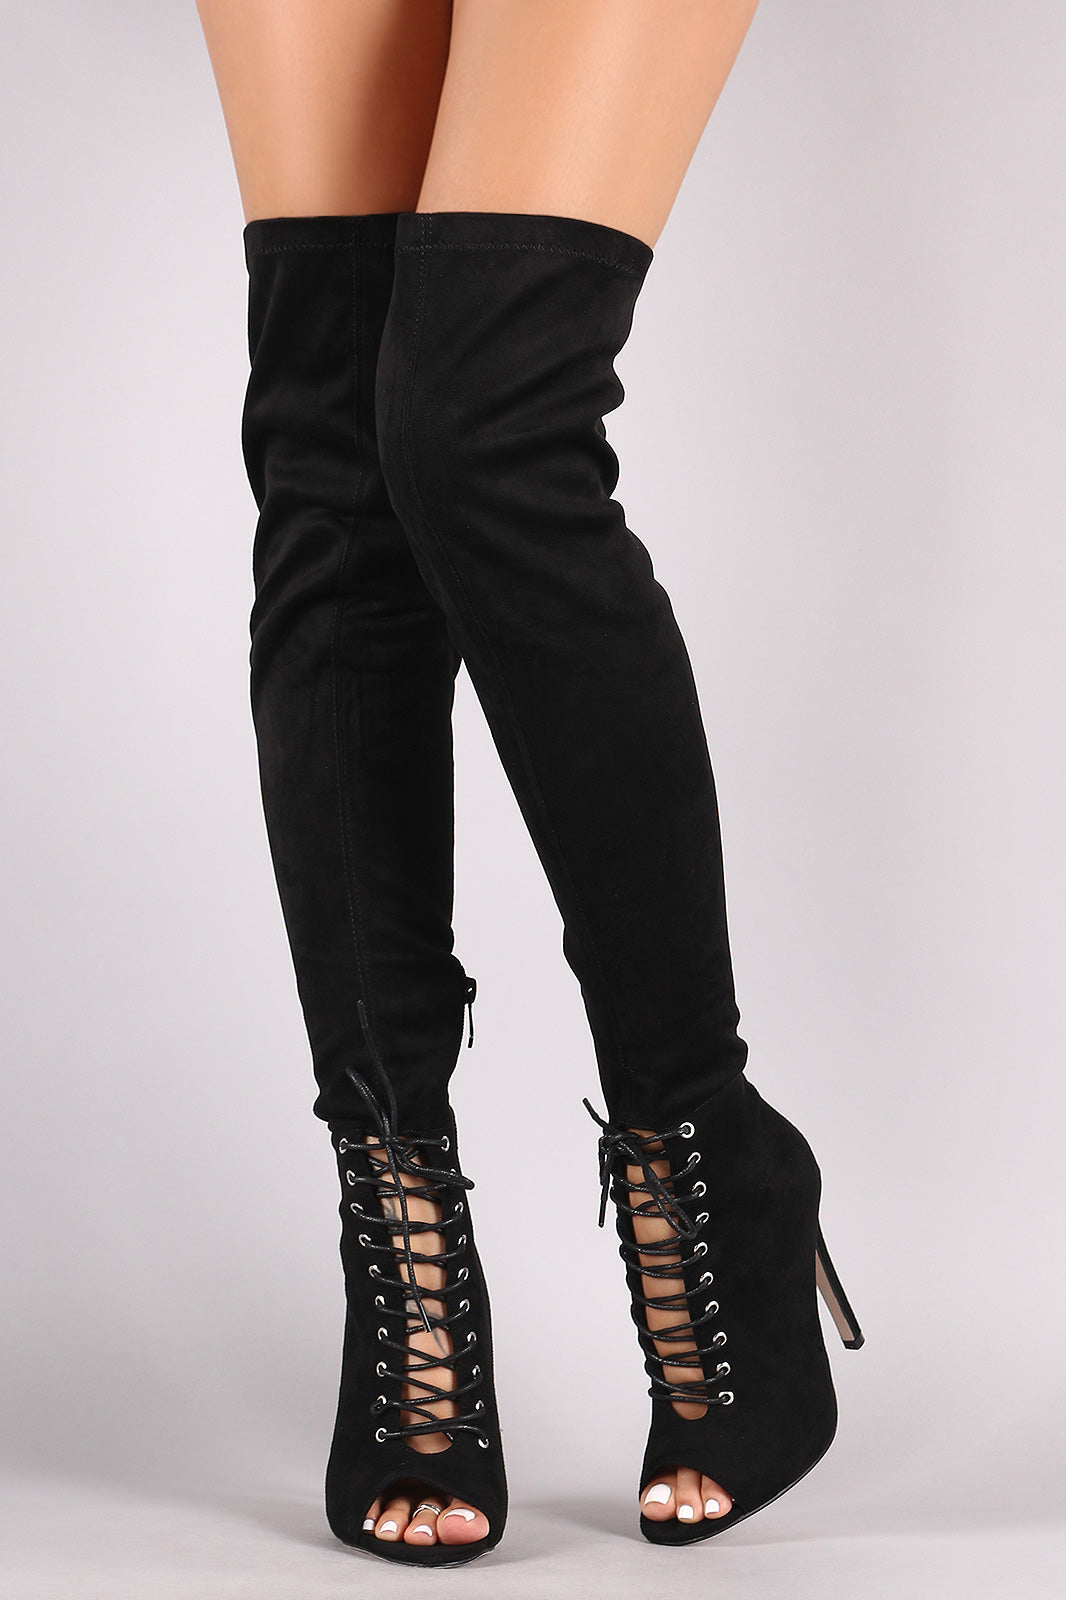 Over-The-Knee Boots For Women By Wild Diva | Women's Fashion Lounge Slightly Stretchy Vegan Suede Shaft Lace Up Stiletto Over-The-Knee Boots